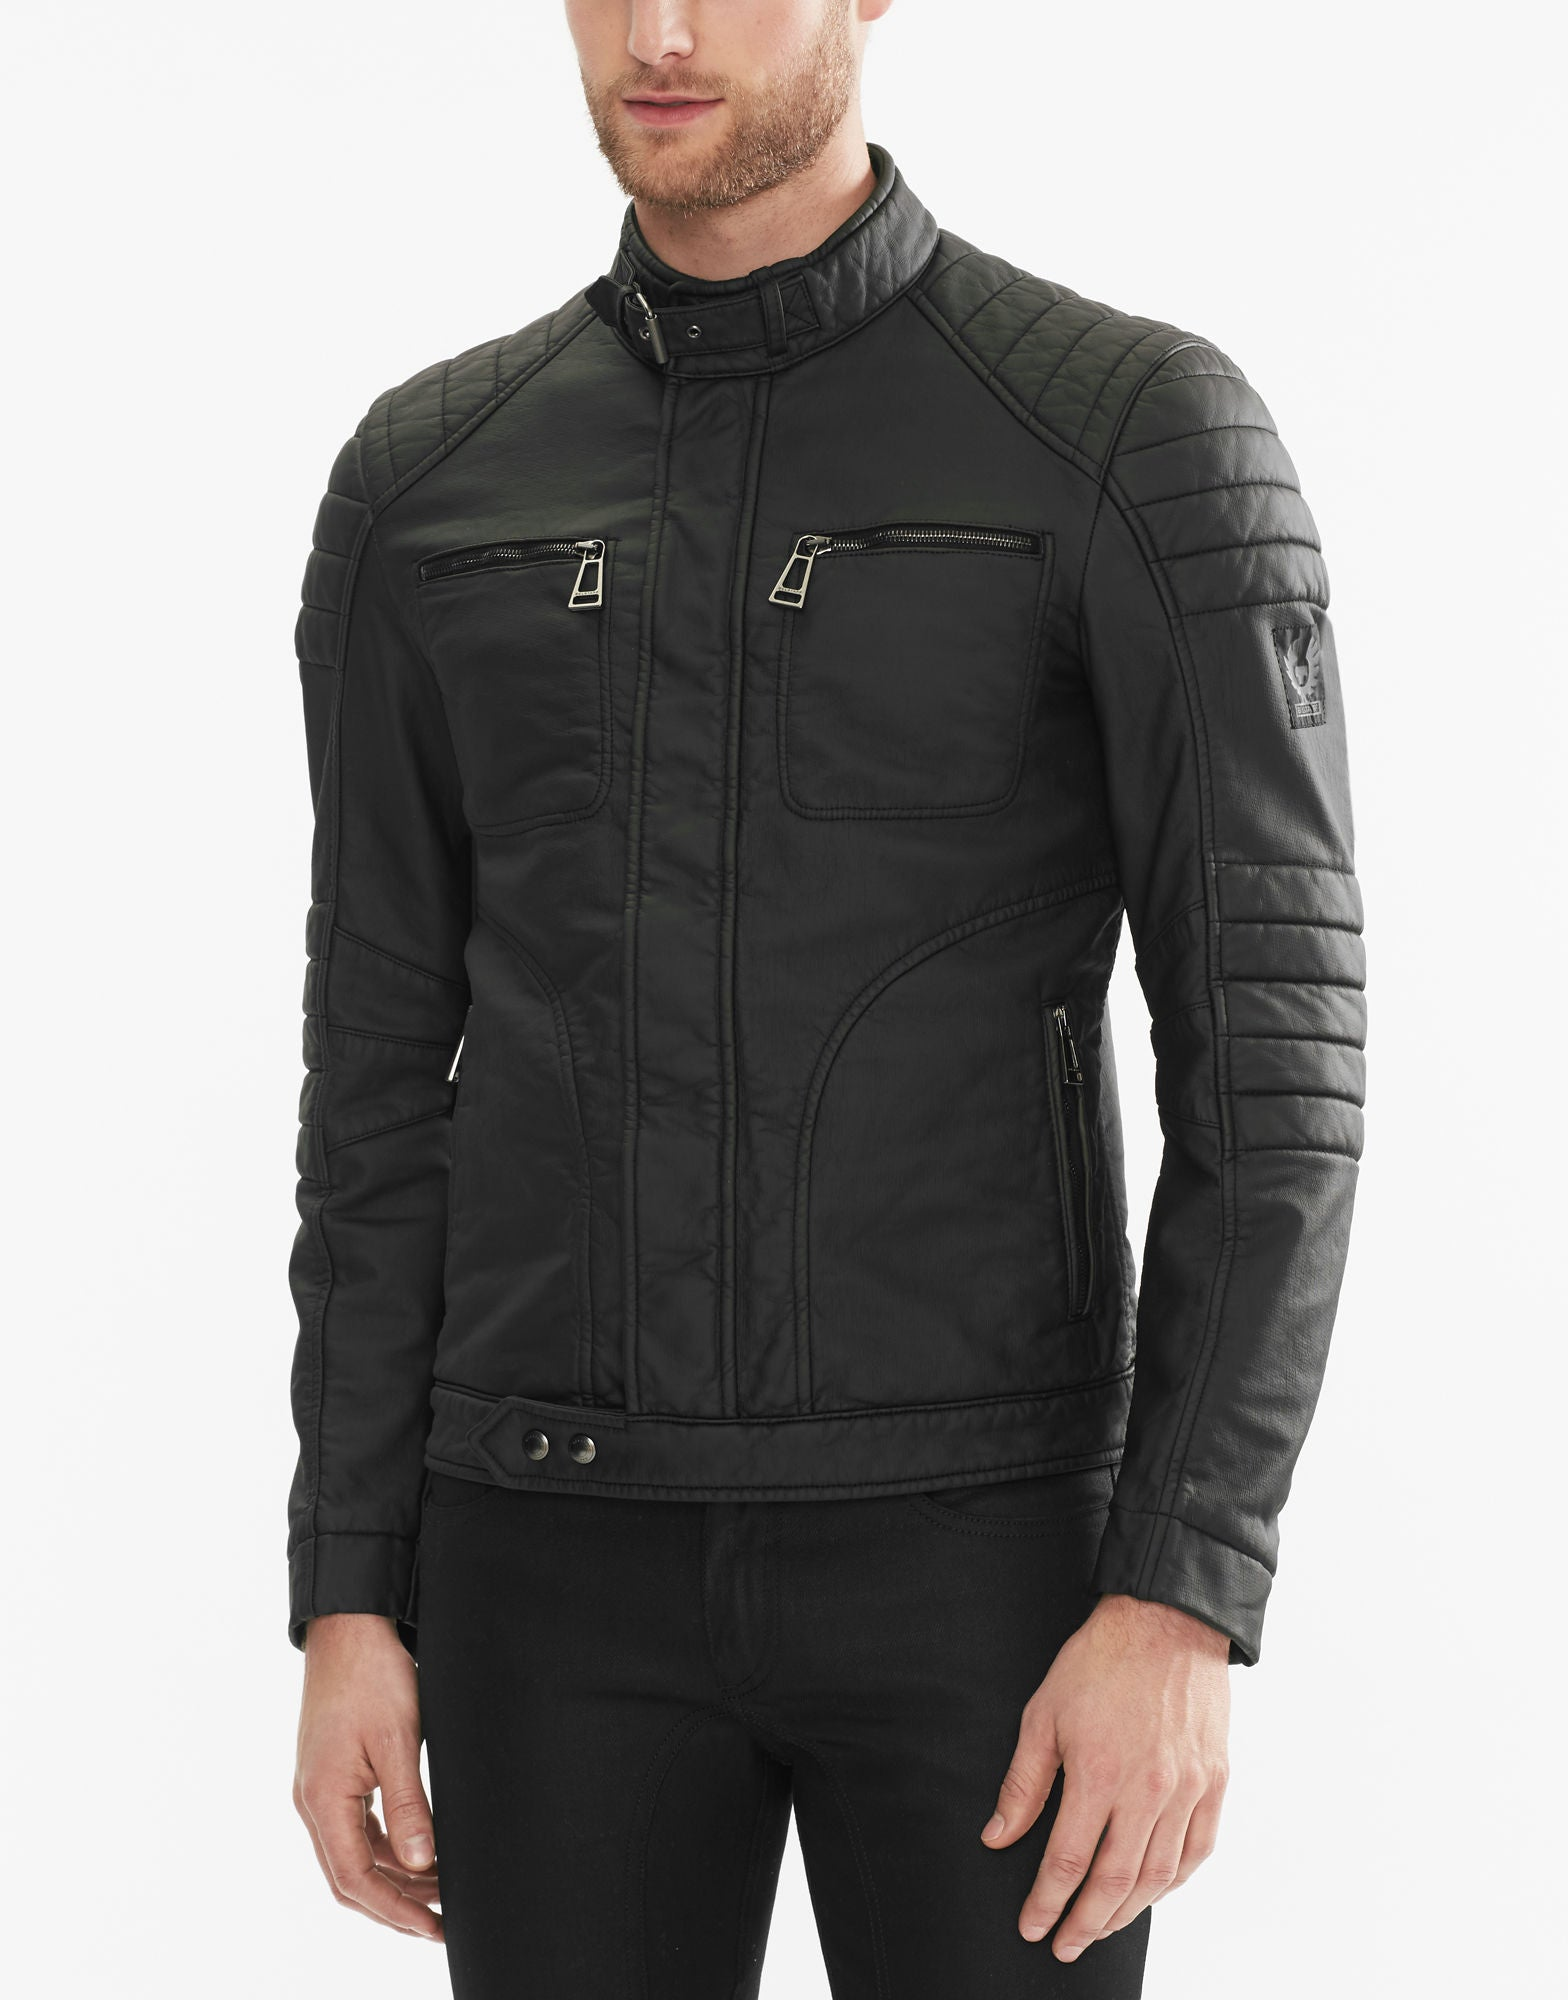 Malcolm Merlyn Black Leather Jacket